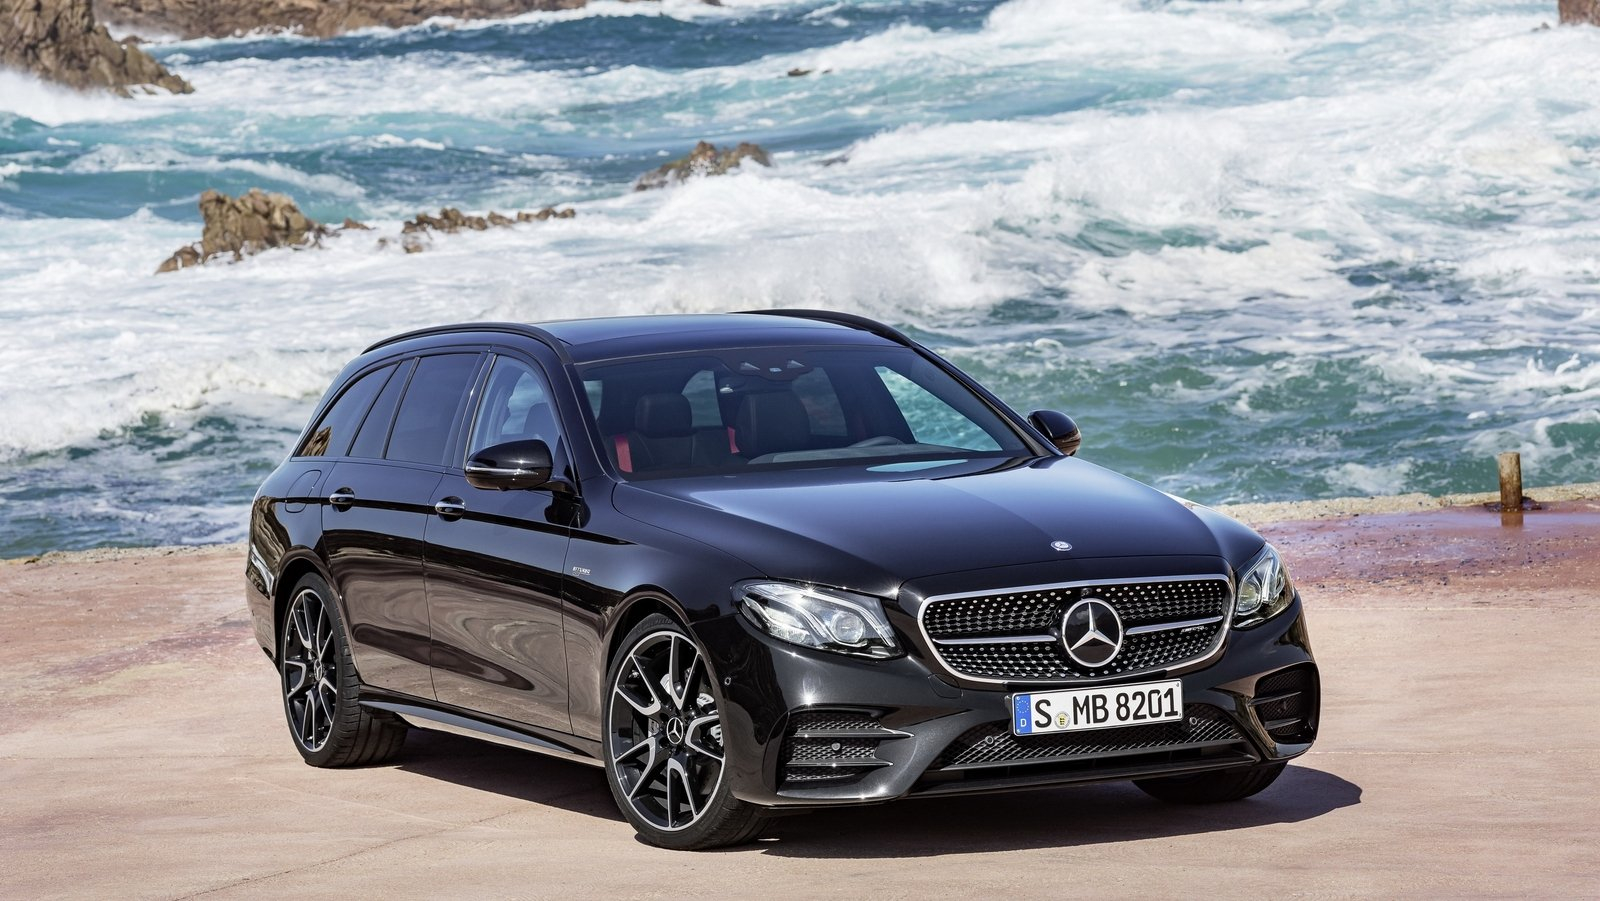 2017 mercedes amg e43 4matic estate review top speed. Black Bedroom Furniture Sets. Home Design Ideas